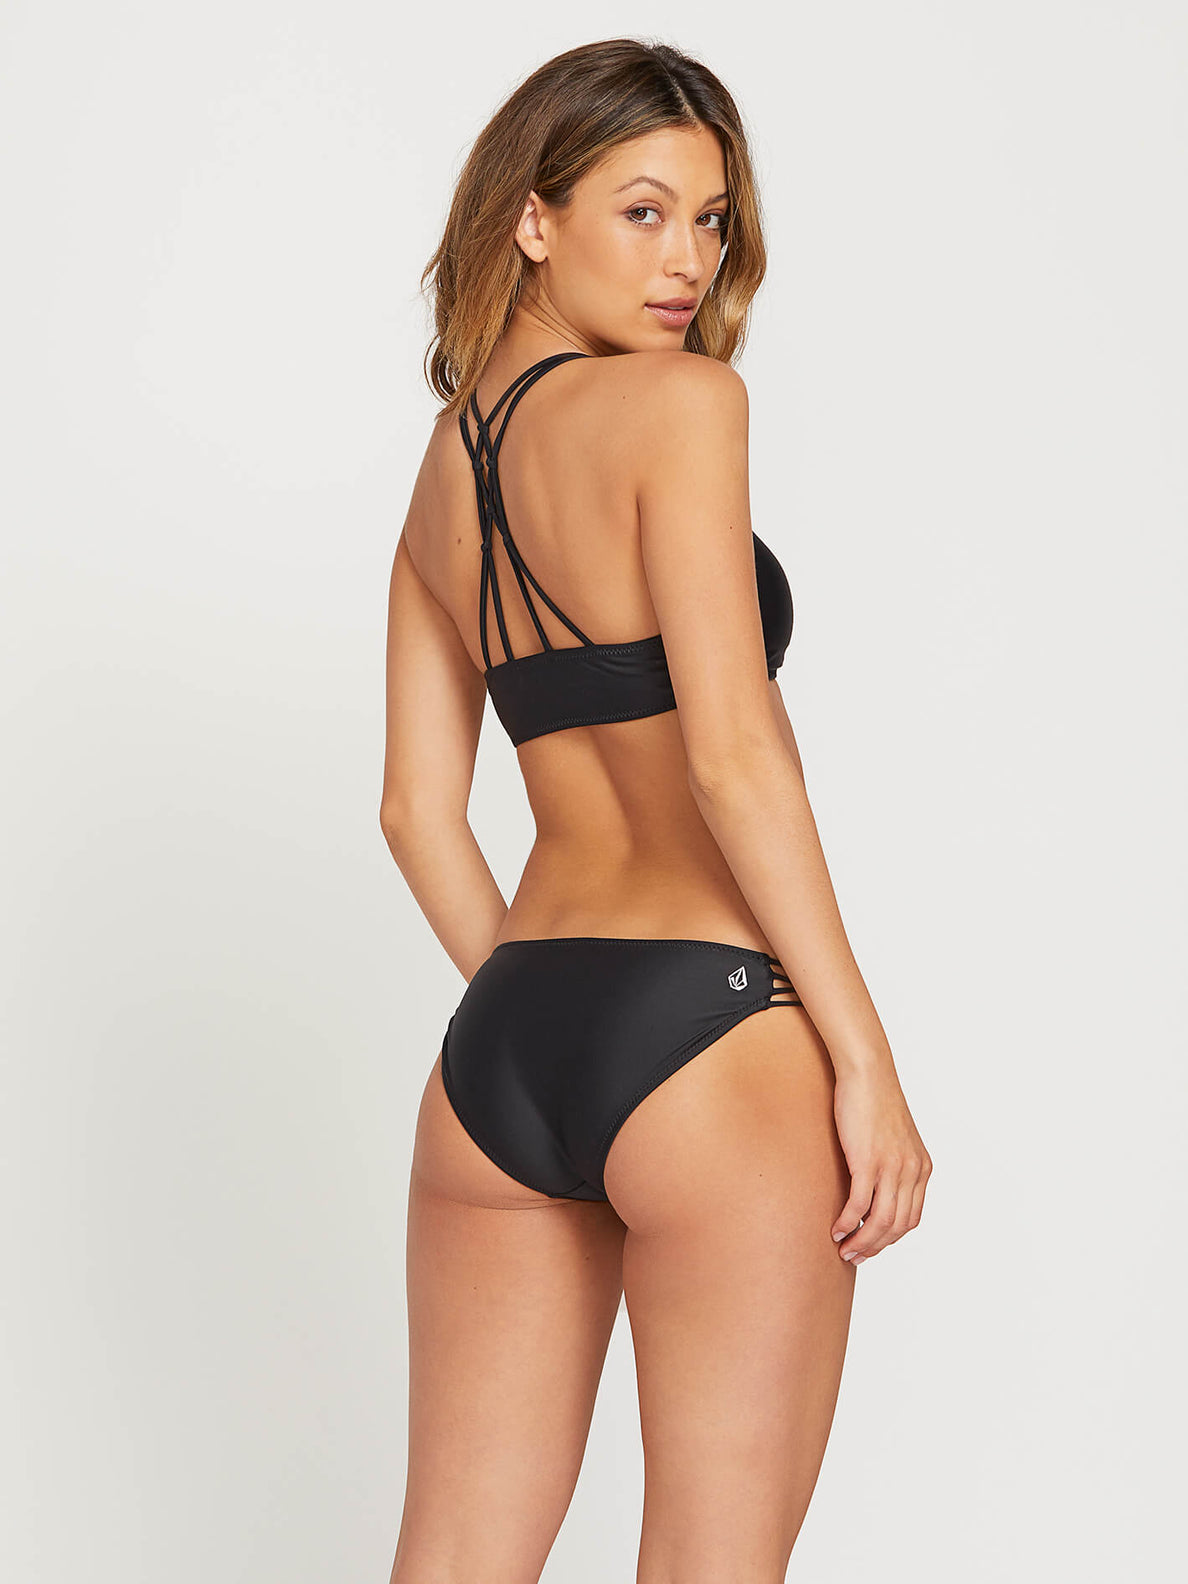 Simply Solid Full Bottoms - Black (O2211700_BLK) [4]